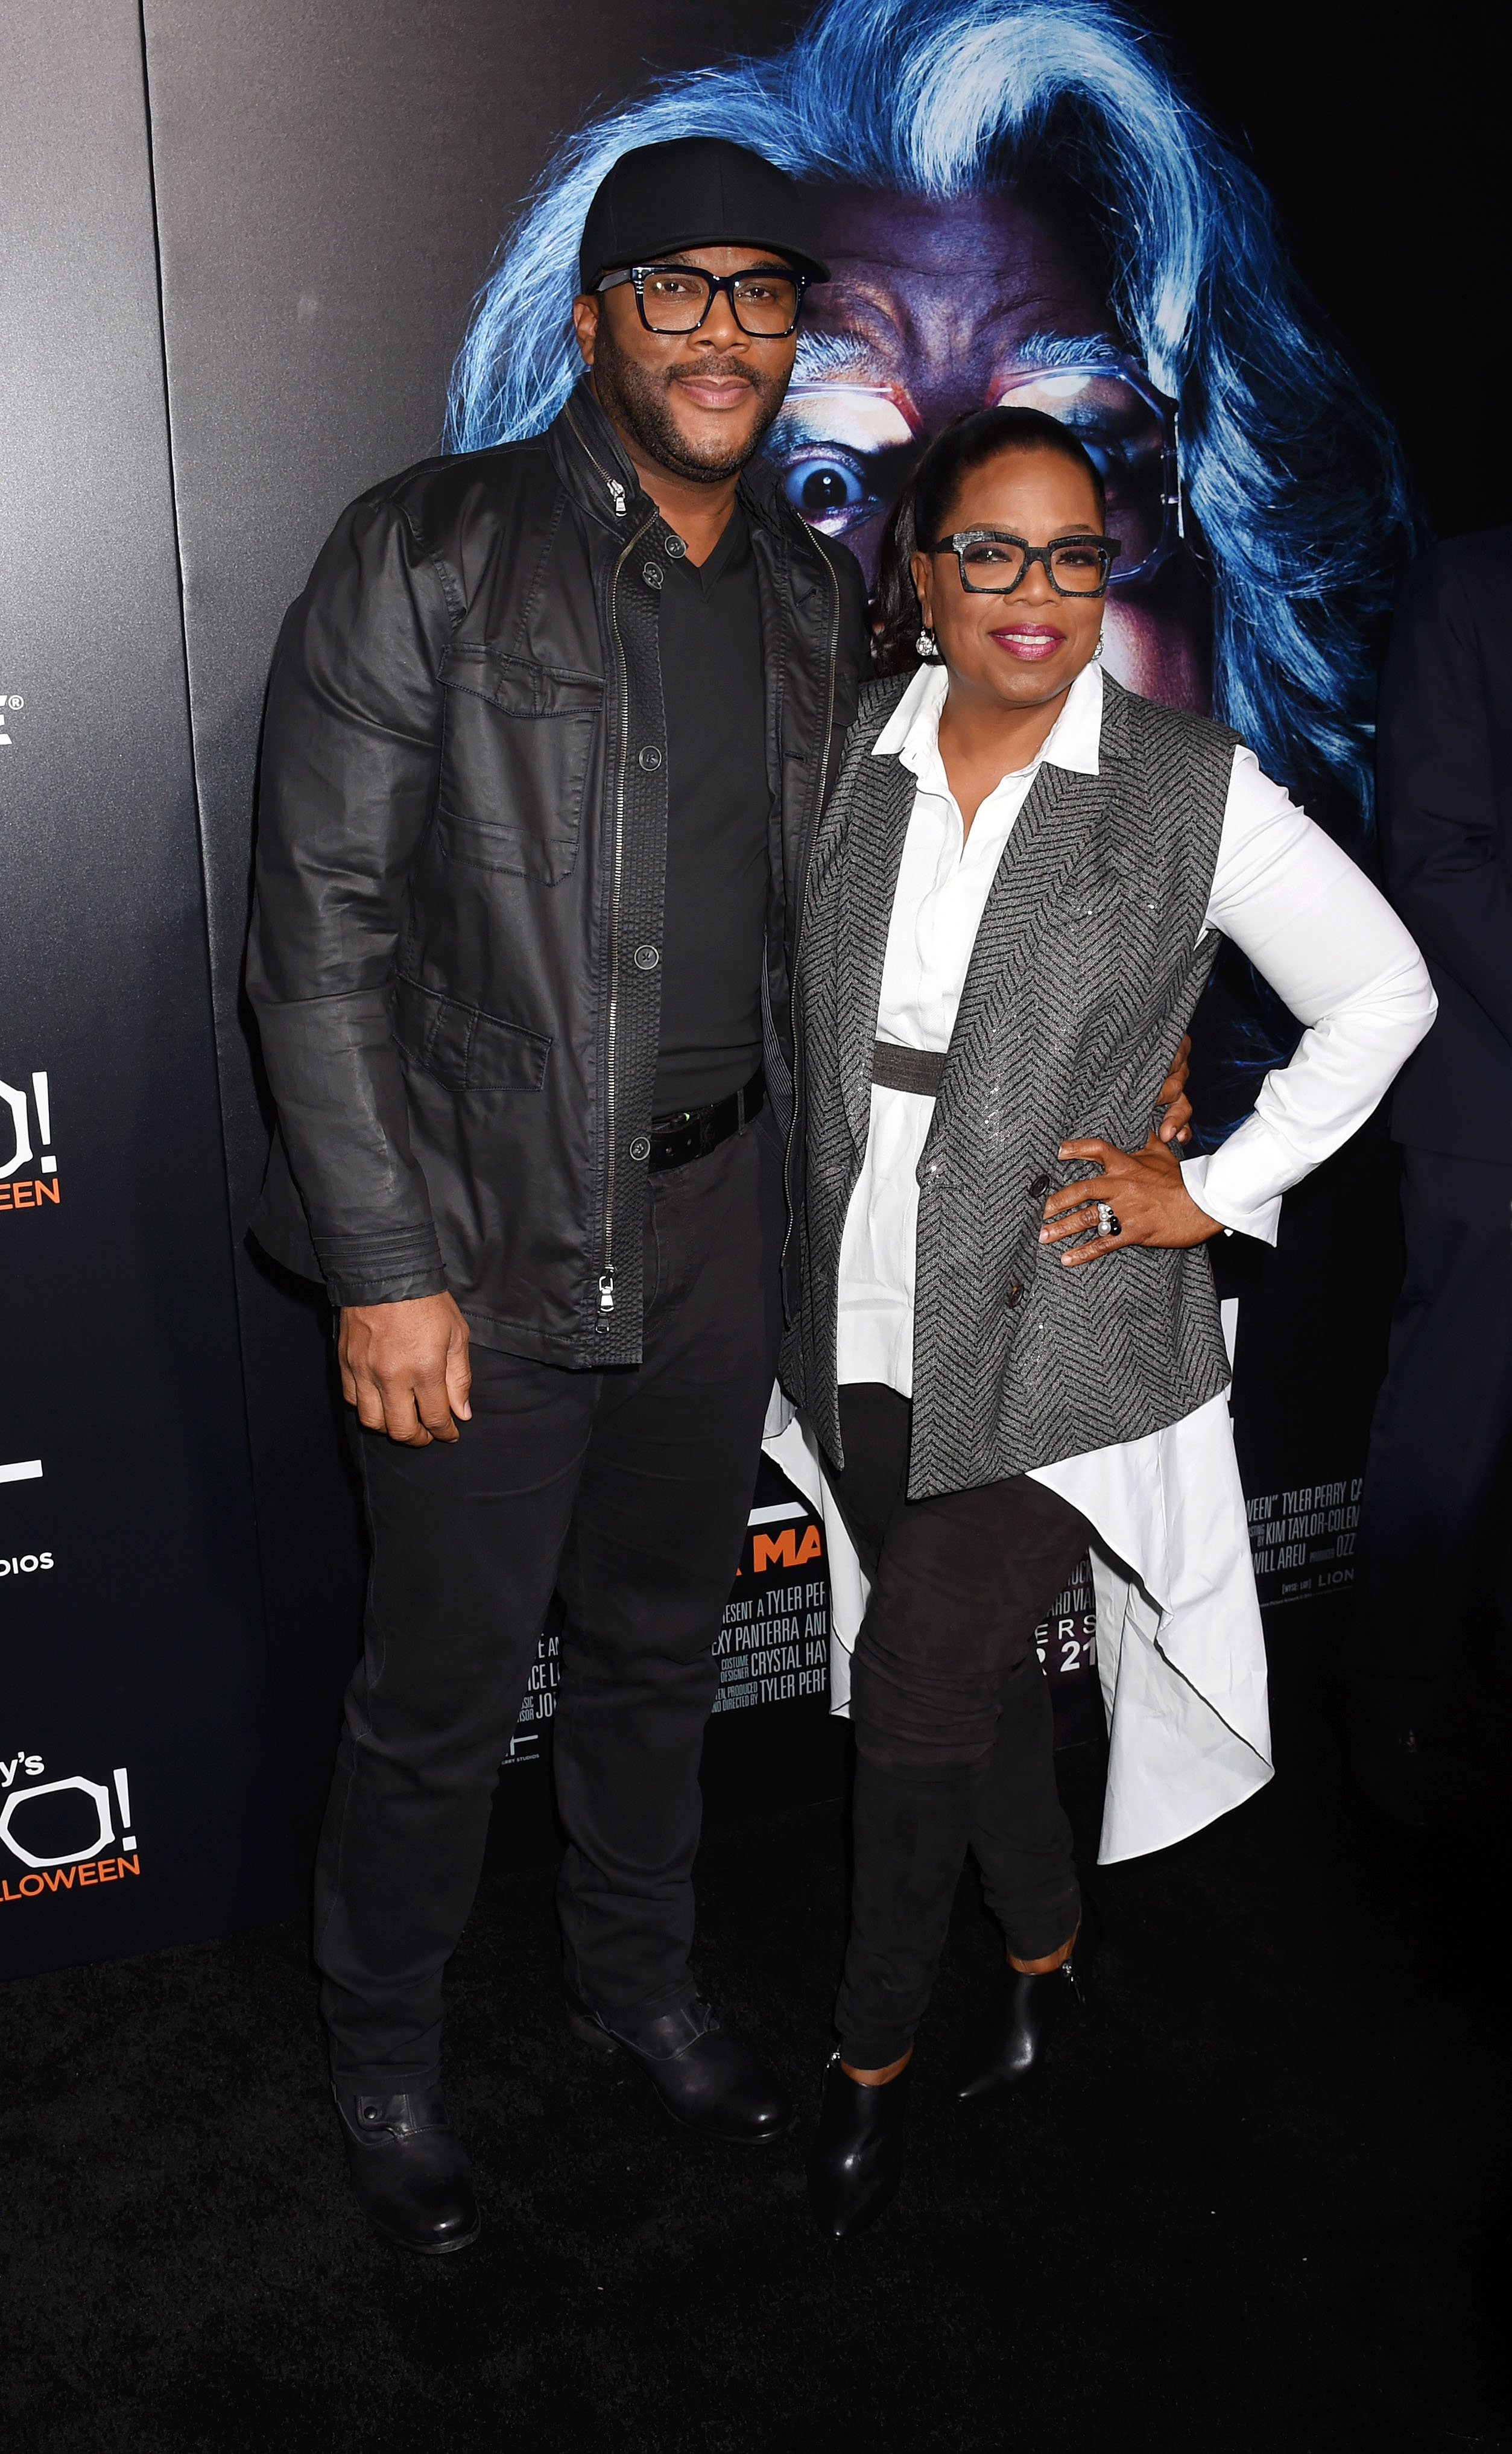 Tyler Perry and Oprah Winfrey at the premiere of 'Boo! A Madea Halloween' on Oct. 17, 2016 in California | Photo: Getty Images